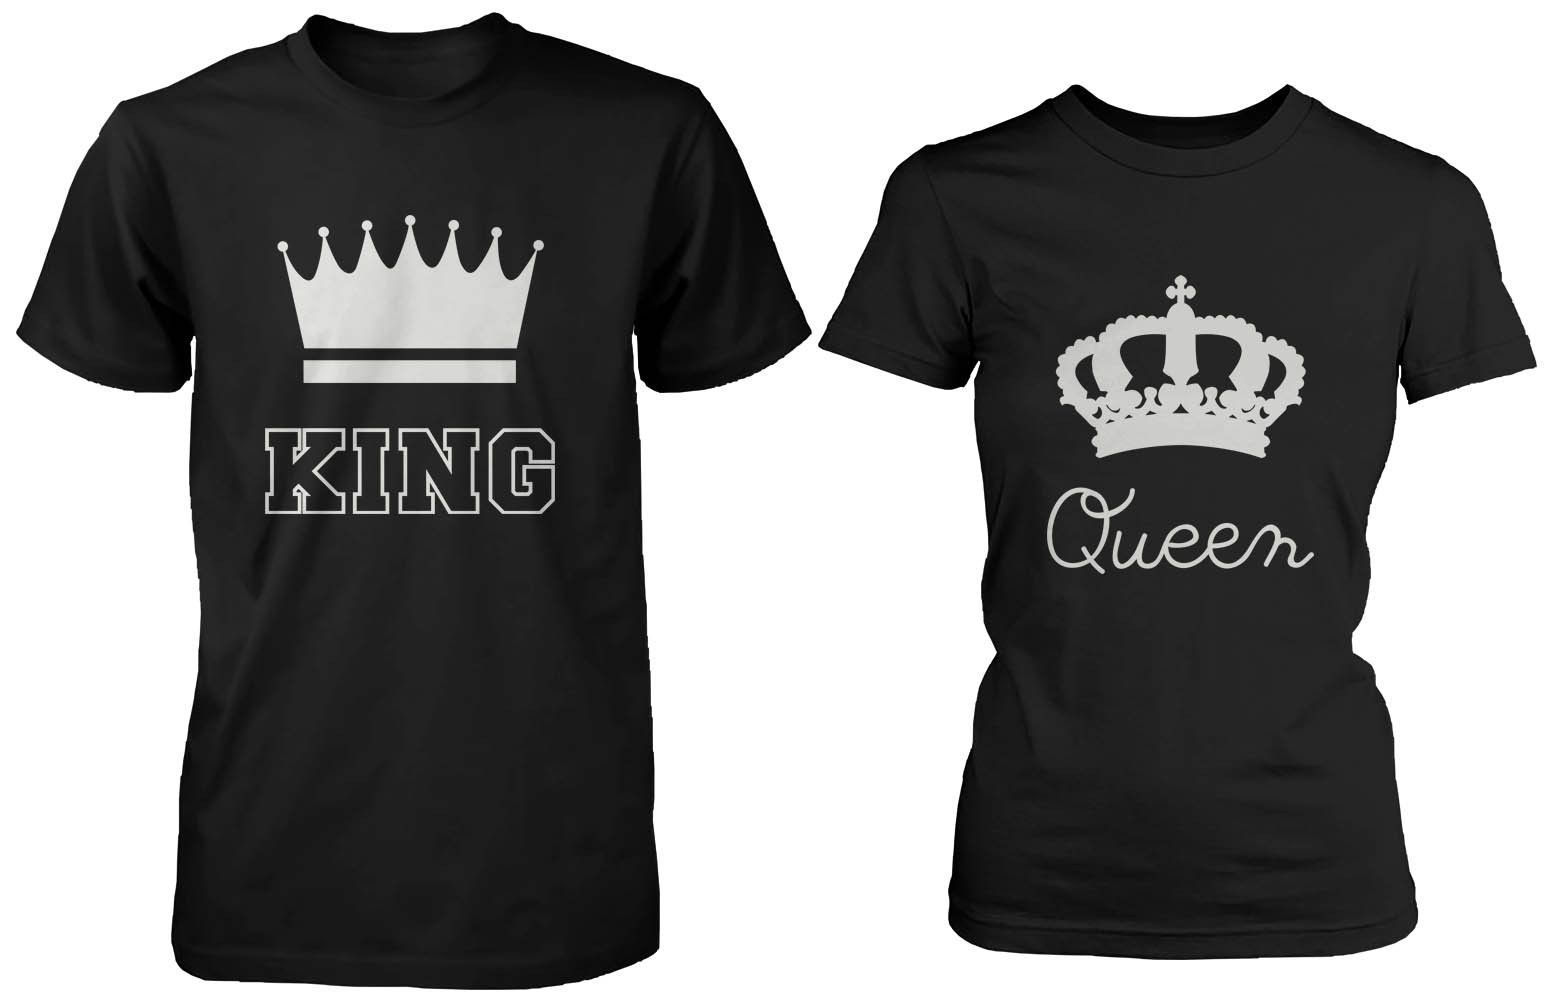 Cute matching couple shirts king and queen black cotton t shirt set